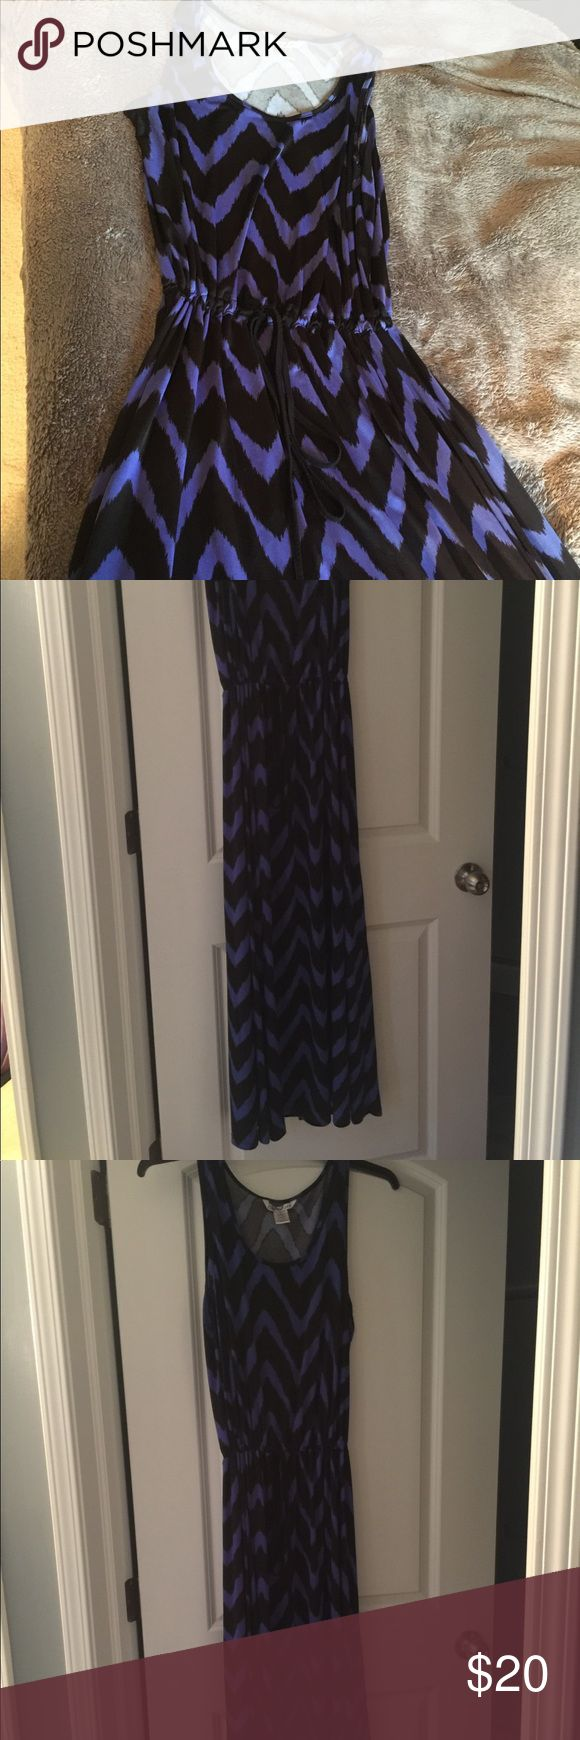 Black and Blue Chevron maxi dress Great flowy and comfortable maxi dress! Cinches at the waist with a draw string. Good used condition christine Dresses Maxi